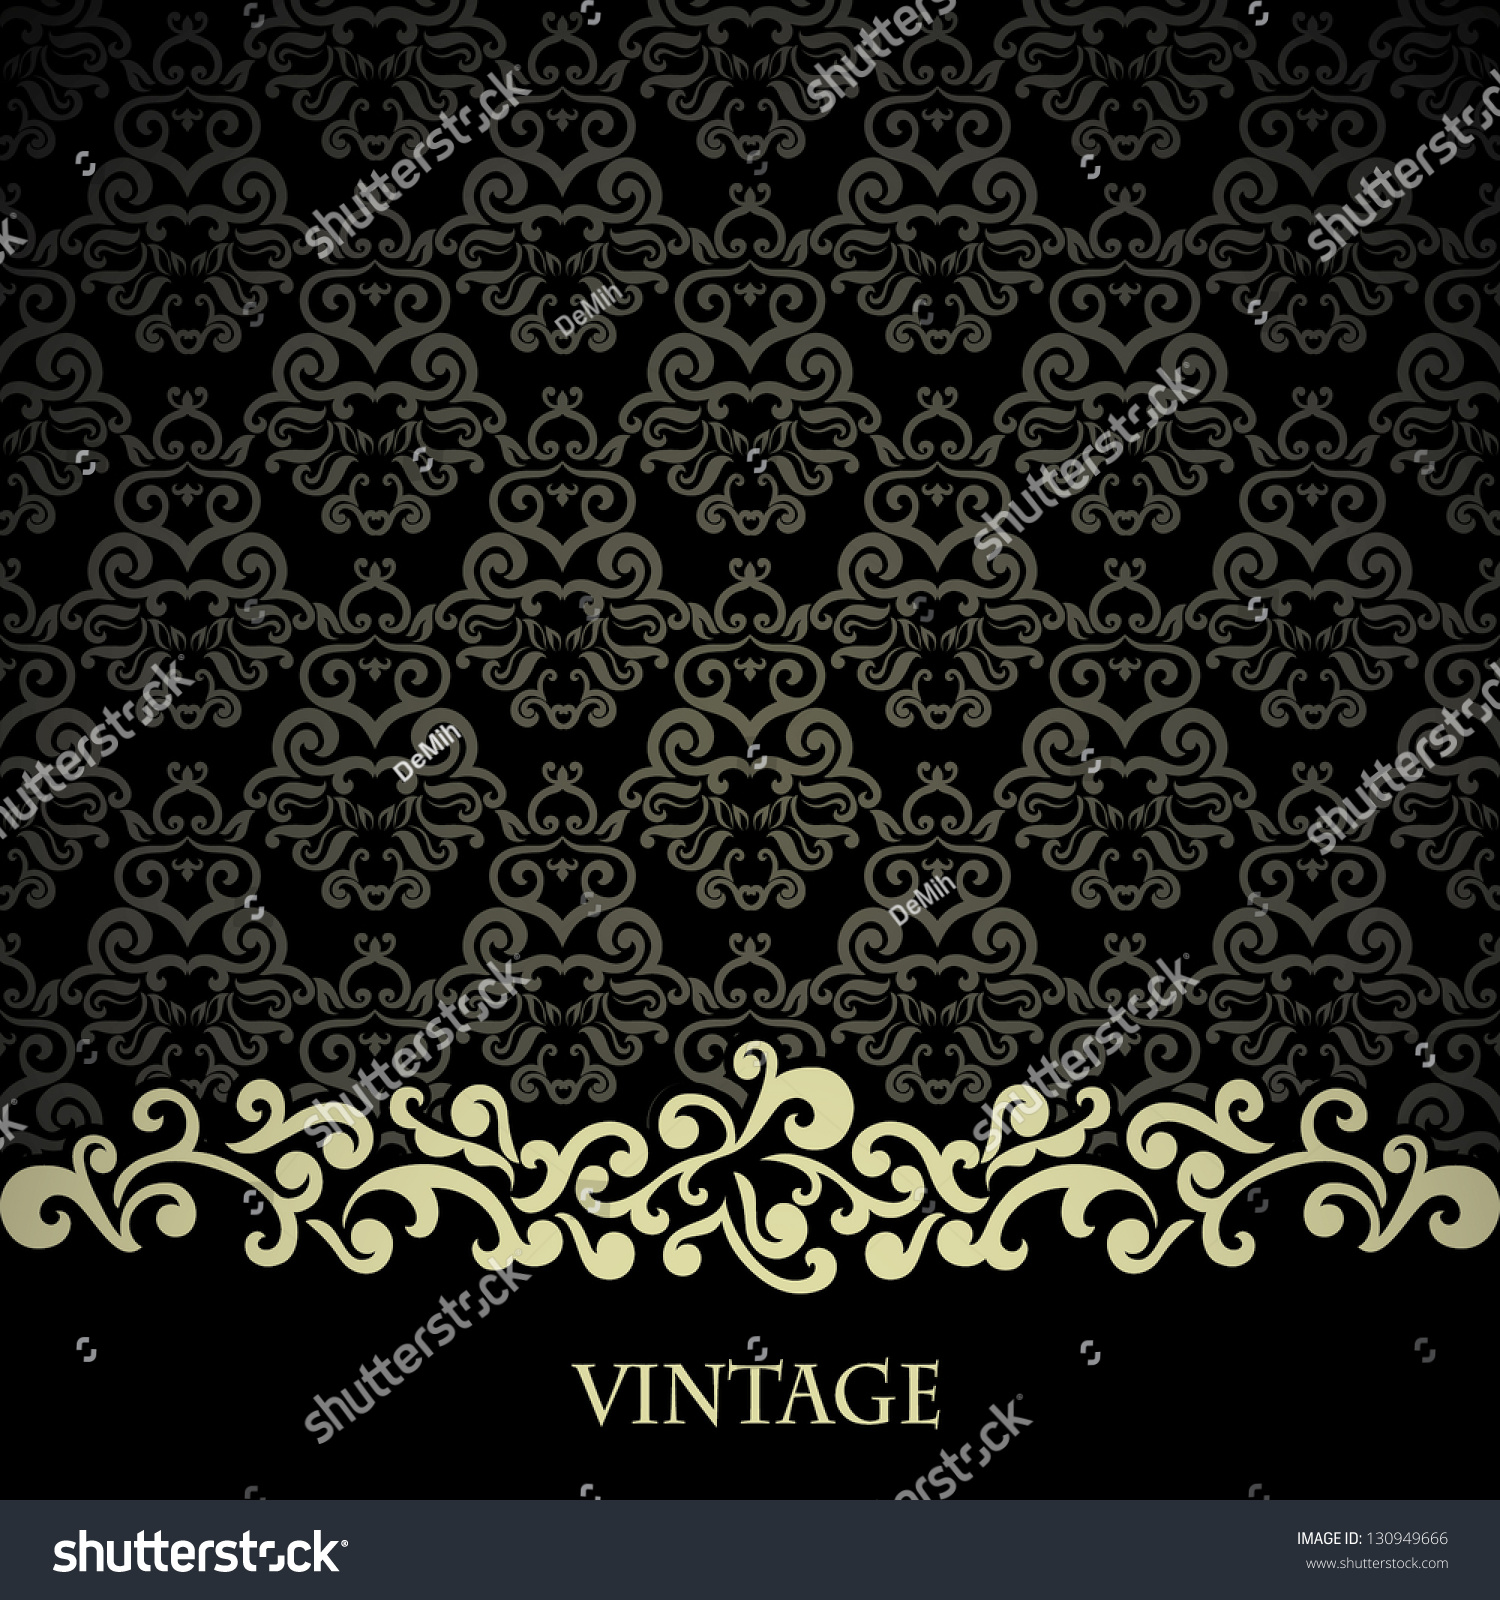 Vintage Card On Black Damask Wallpaper